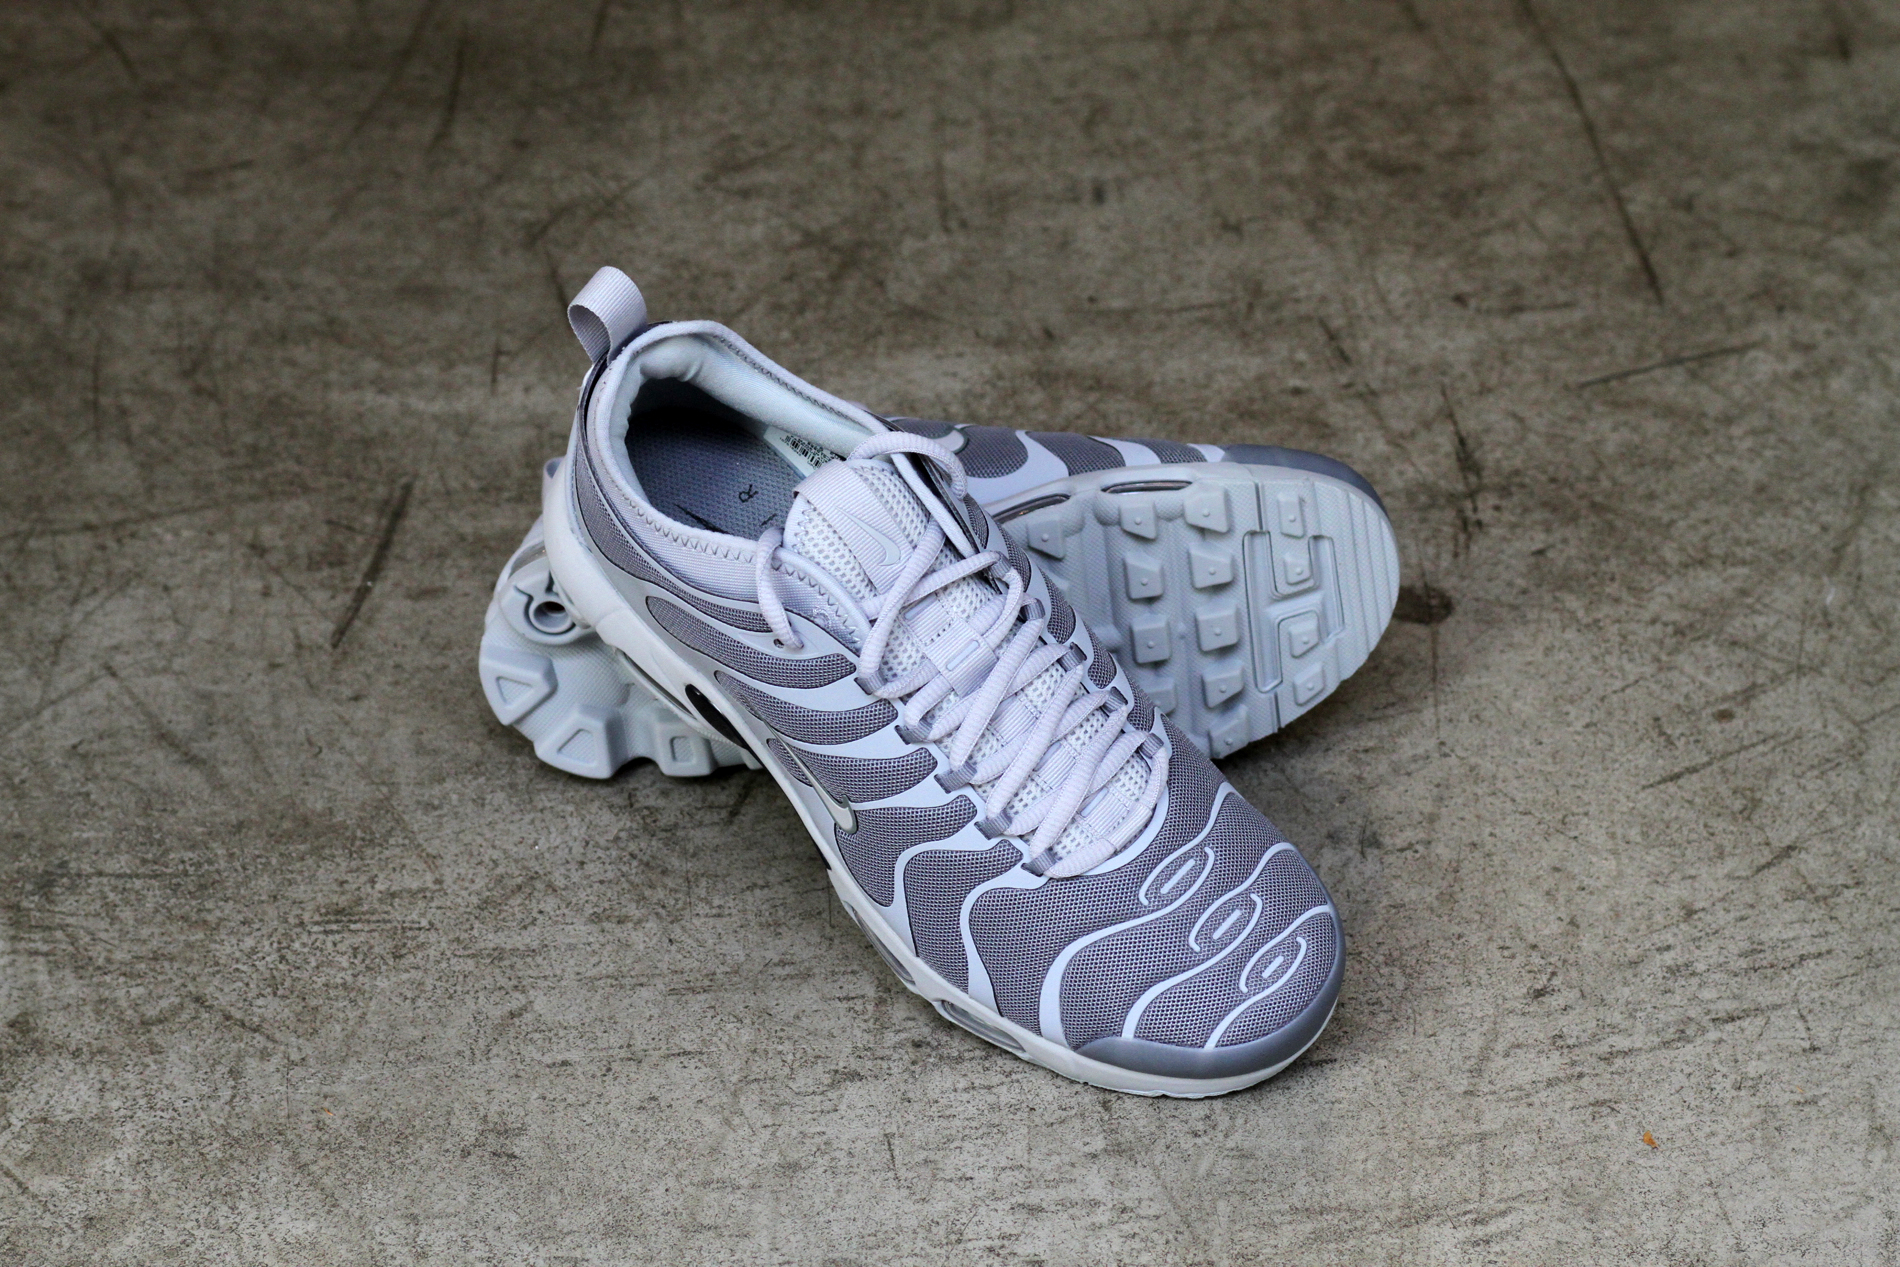 nike-air-max-plus-tn-ultra-cool-grey-898015007